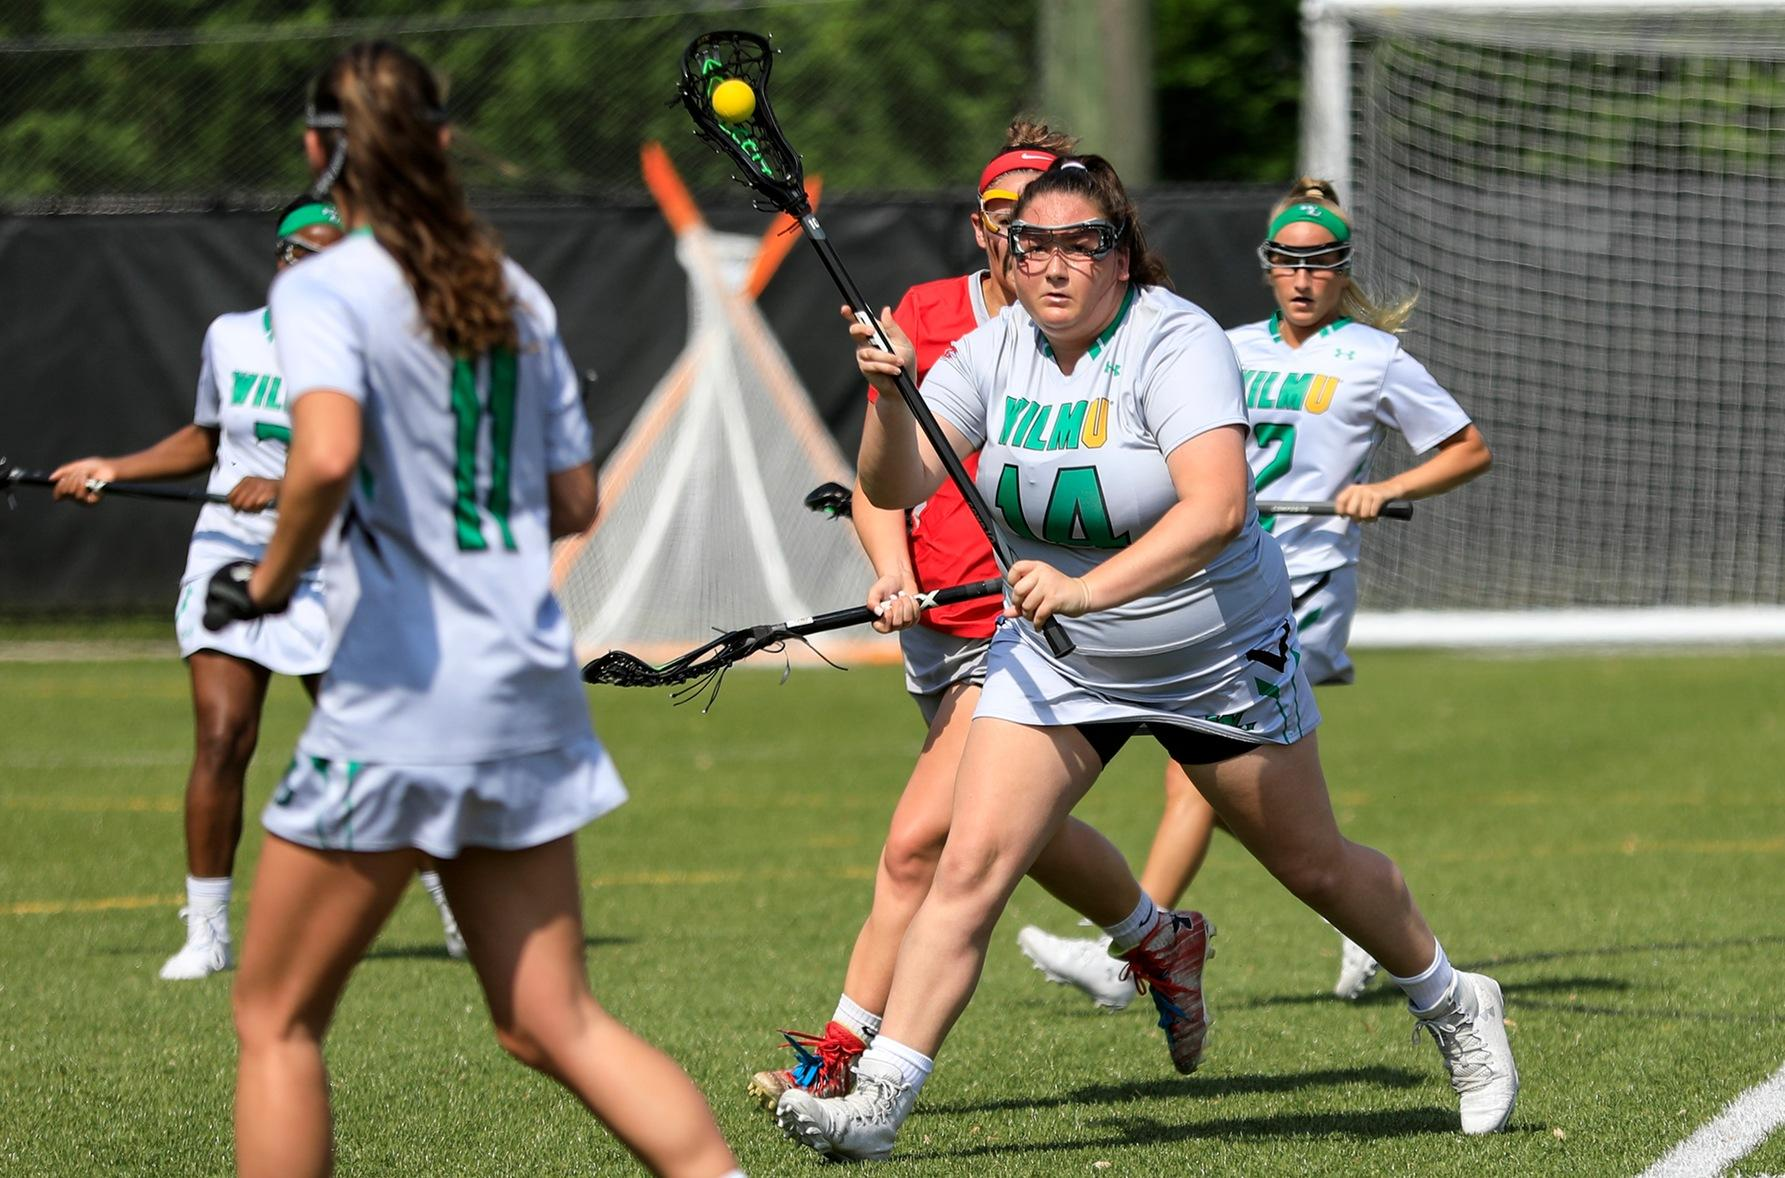 Wilmington University vs Chestnut Hill University Women's Lacrosse Game on 04/30/29 @Wilmington University's Sports Complex in Bear Delaware 